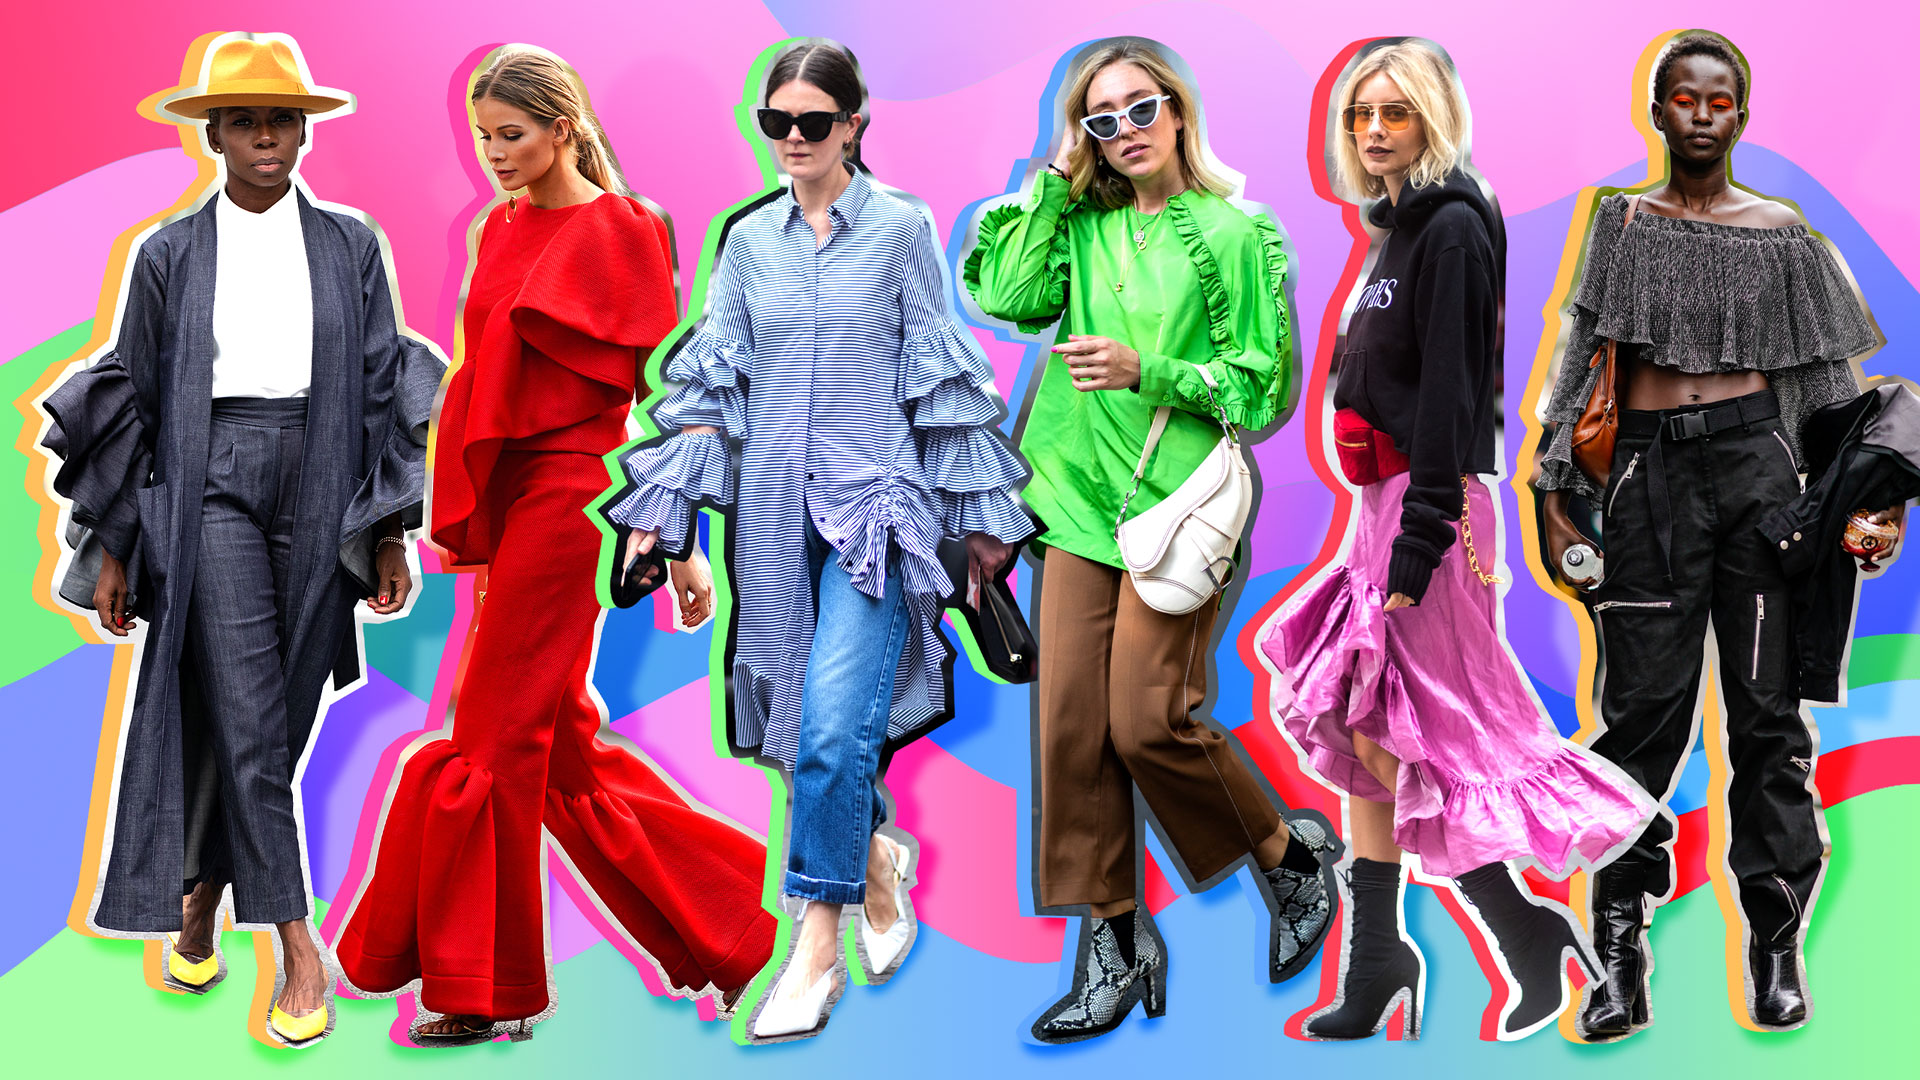 Your 2019 Fashion Forecast: Ruffles Are Back in a Big, Big Way